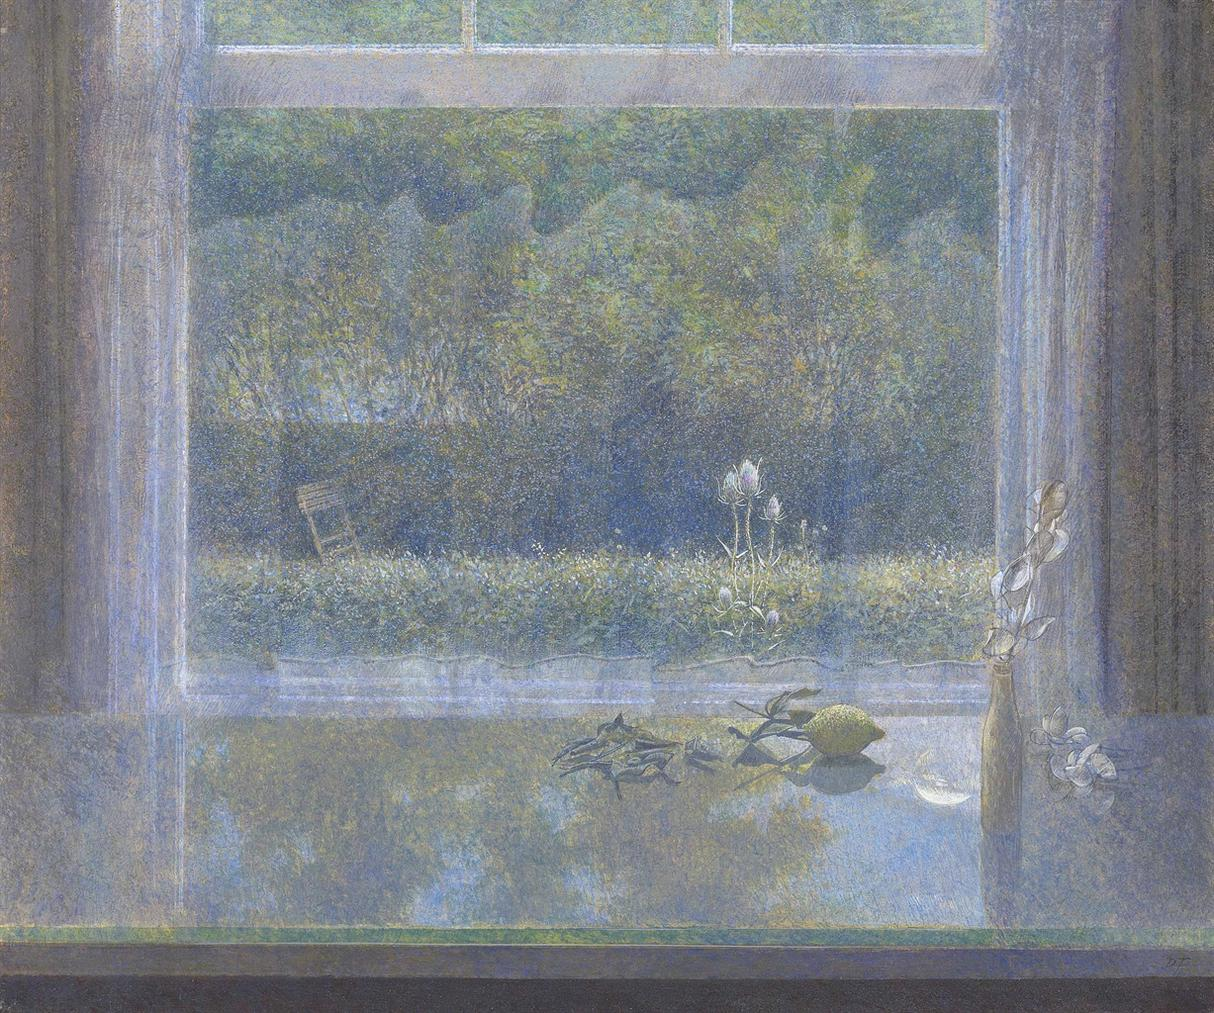 David Tindle - Moonlight-1989